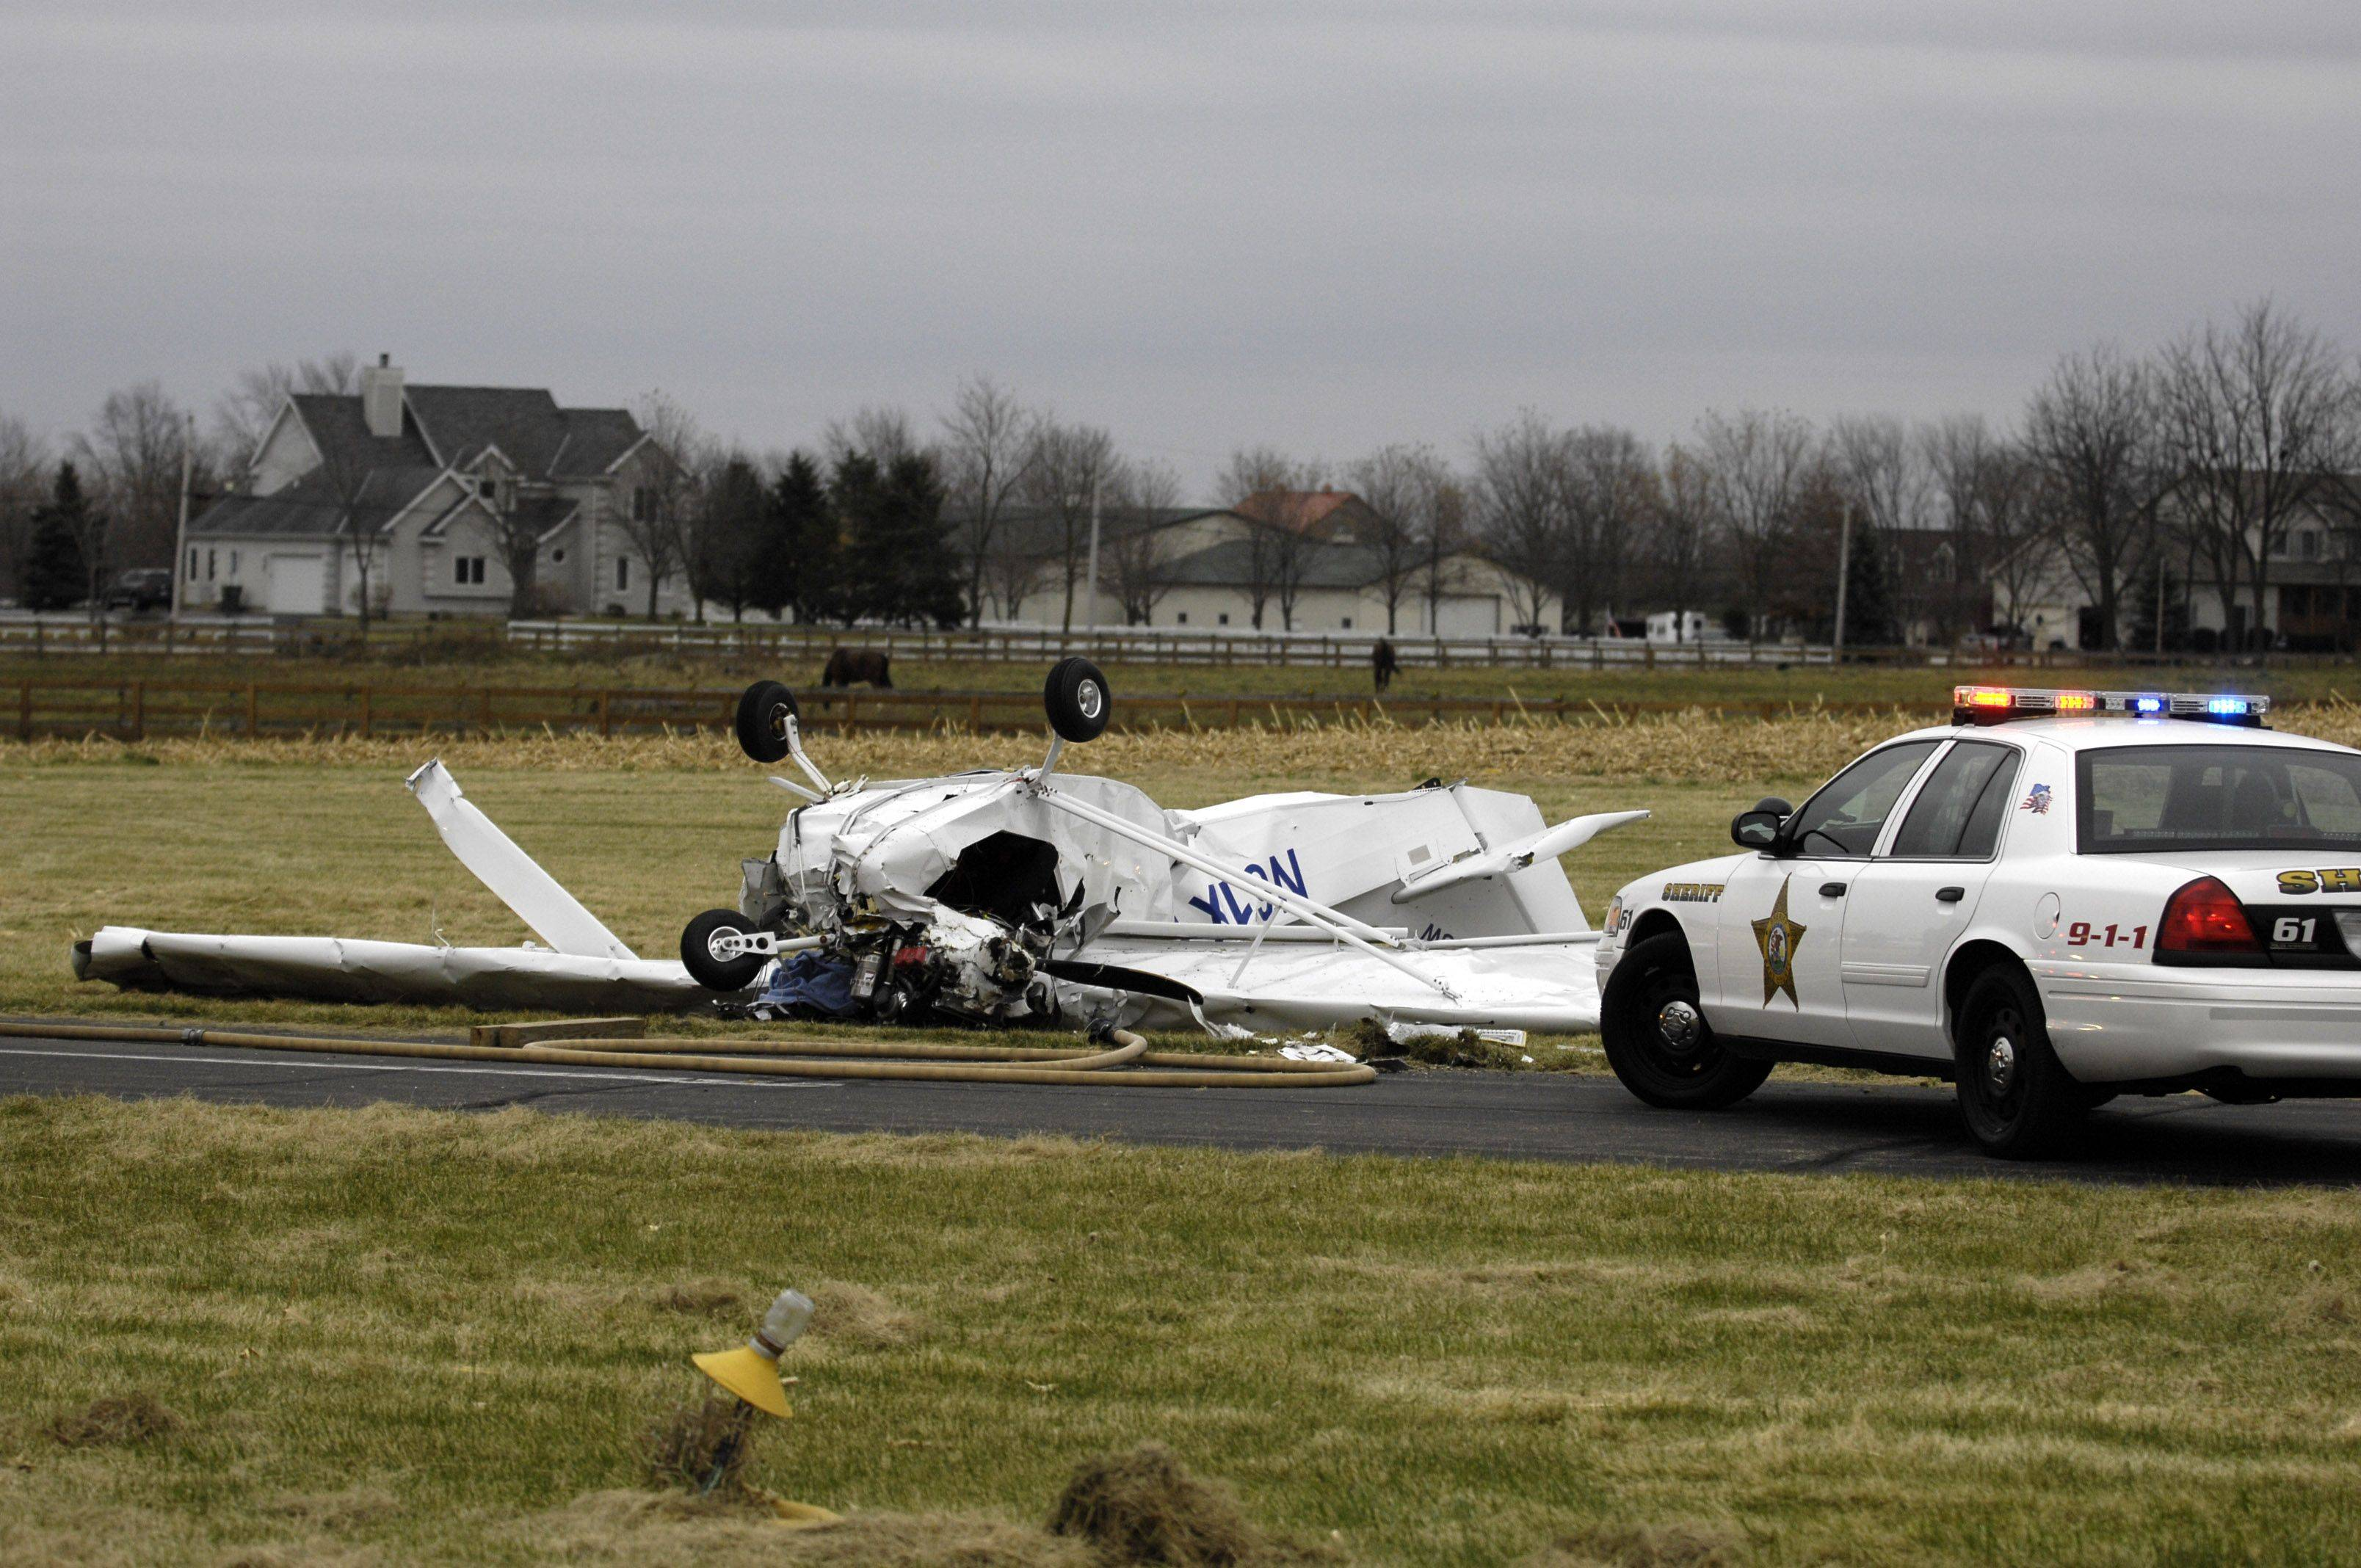 A 69-year-old Hampshire man died Sunday when the small, single-engine airplane he was piloting crashed upon takeoff from an airstrip west of Elgin. Frank Kehoe was described by friends who gathered at the scene Sunday afternoon as an experienced pilot whose passion was planes.